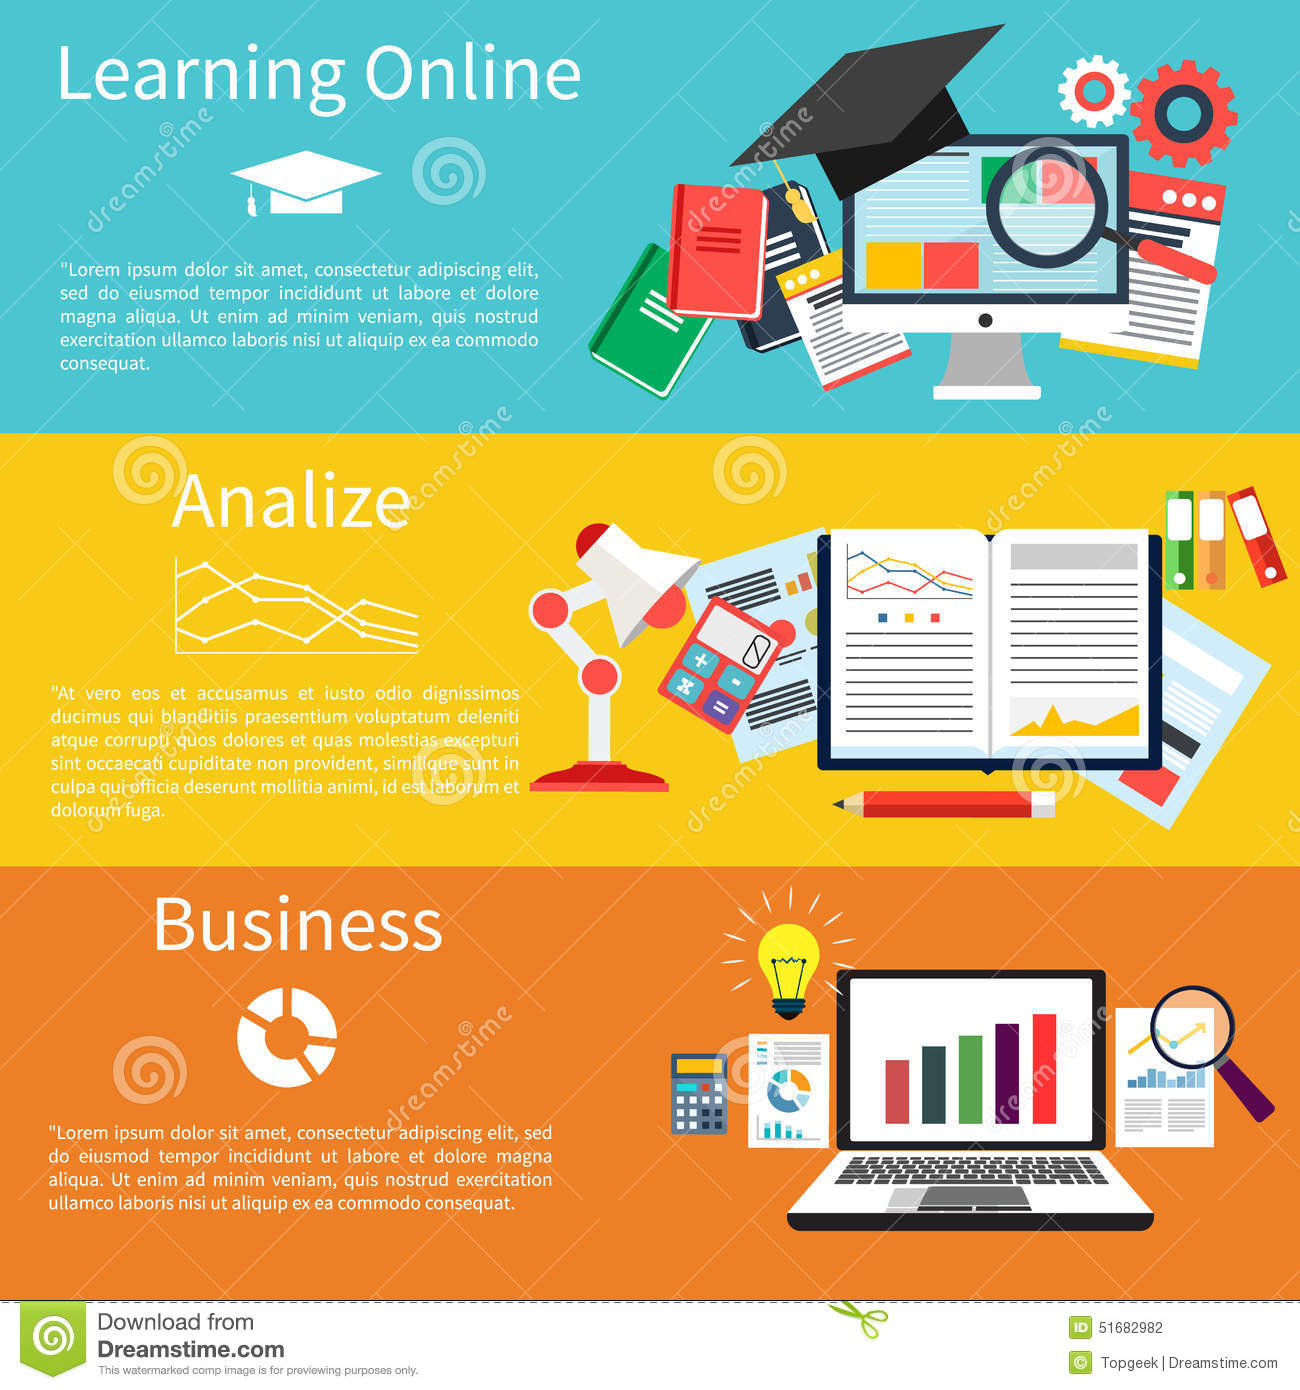 Learning online, analize and business